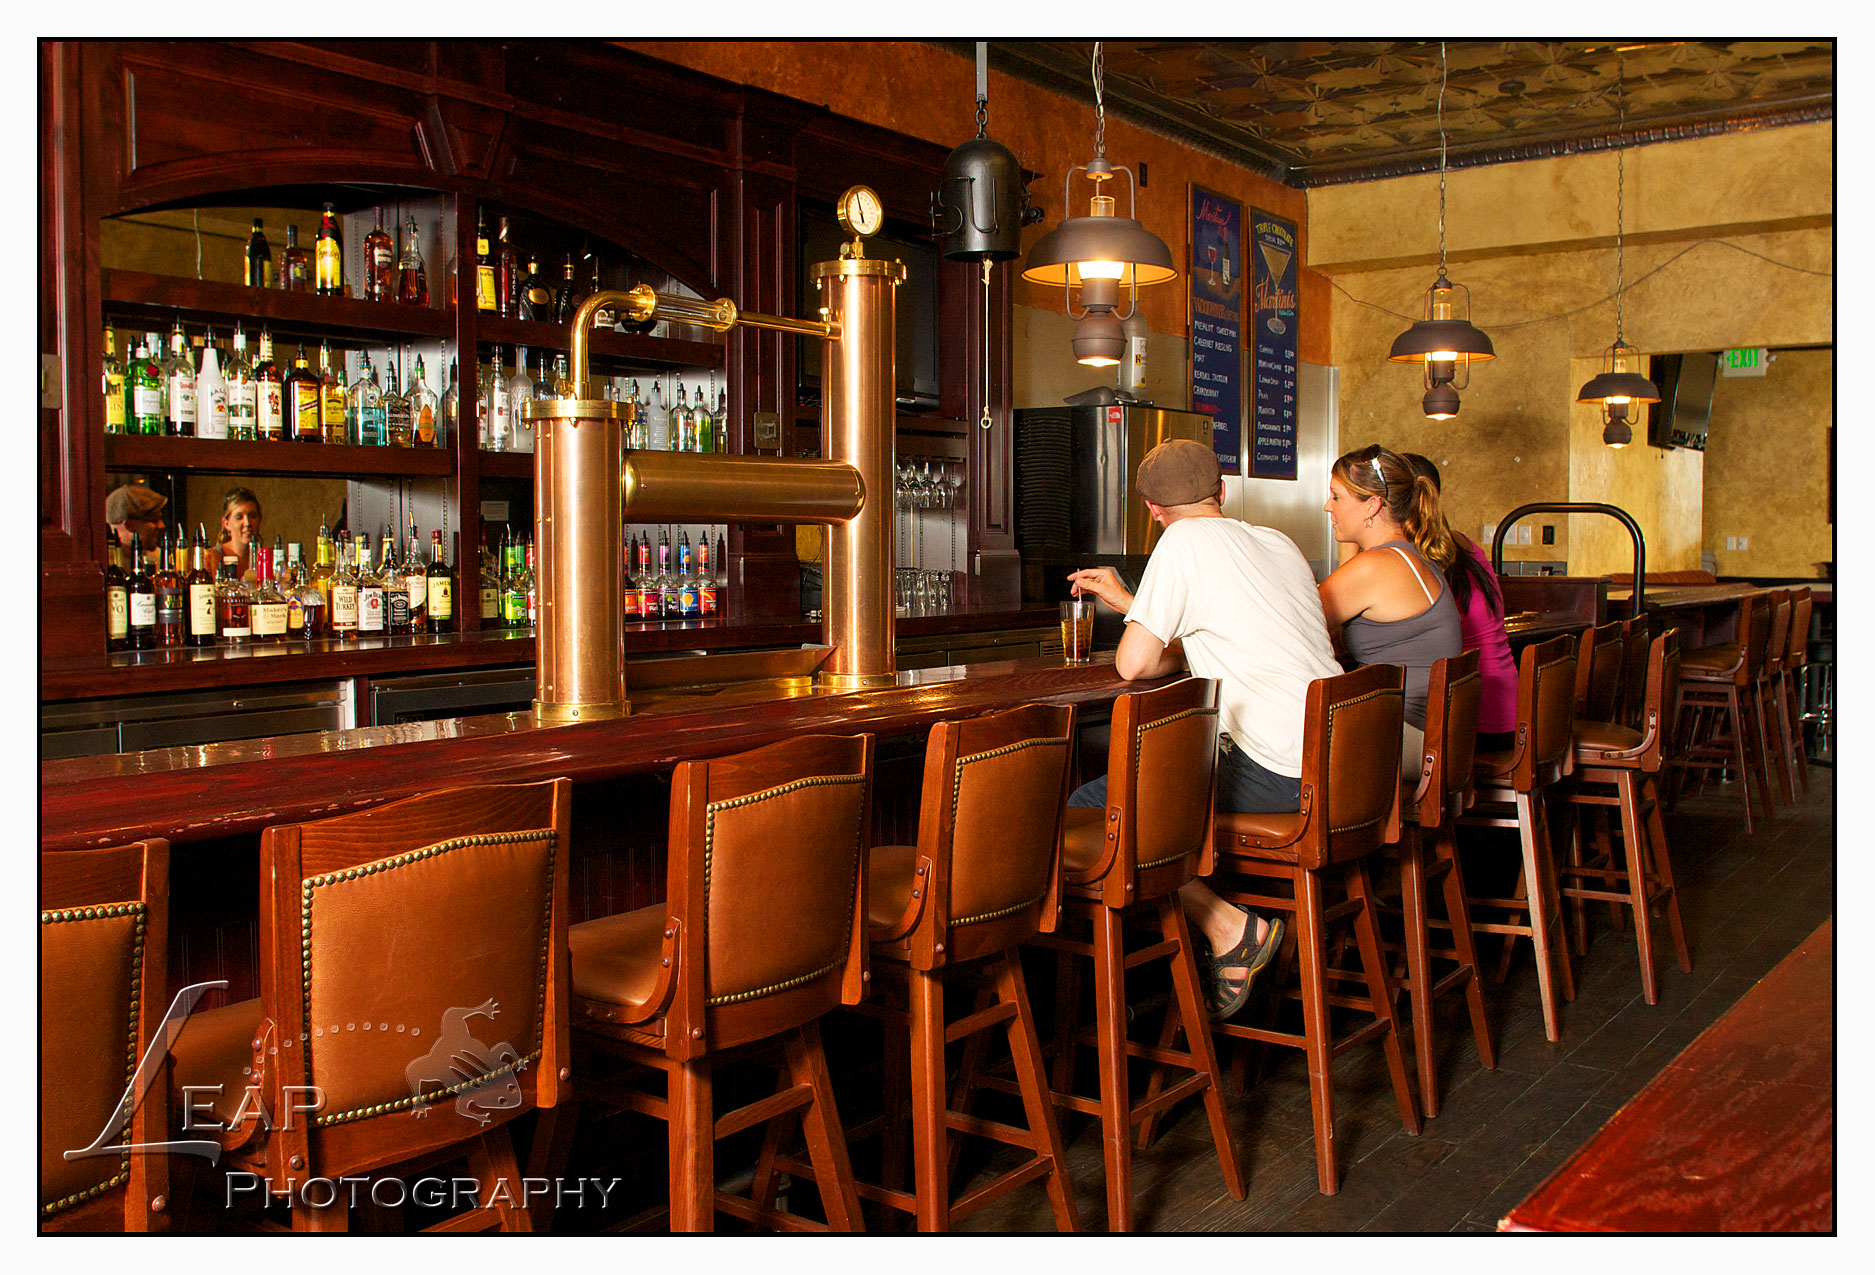 people sitting at bar on bar stools